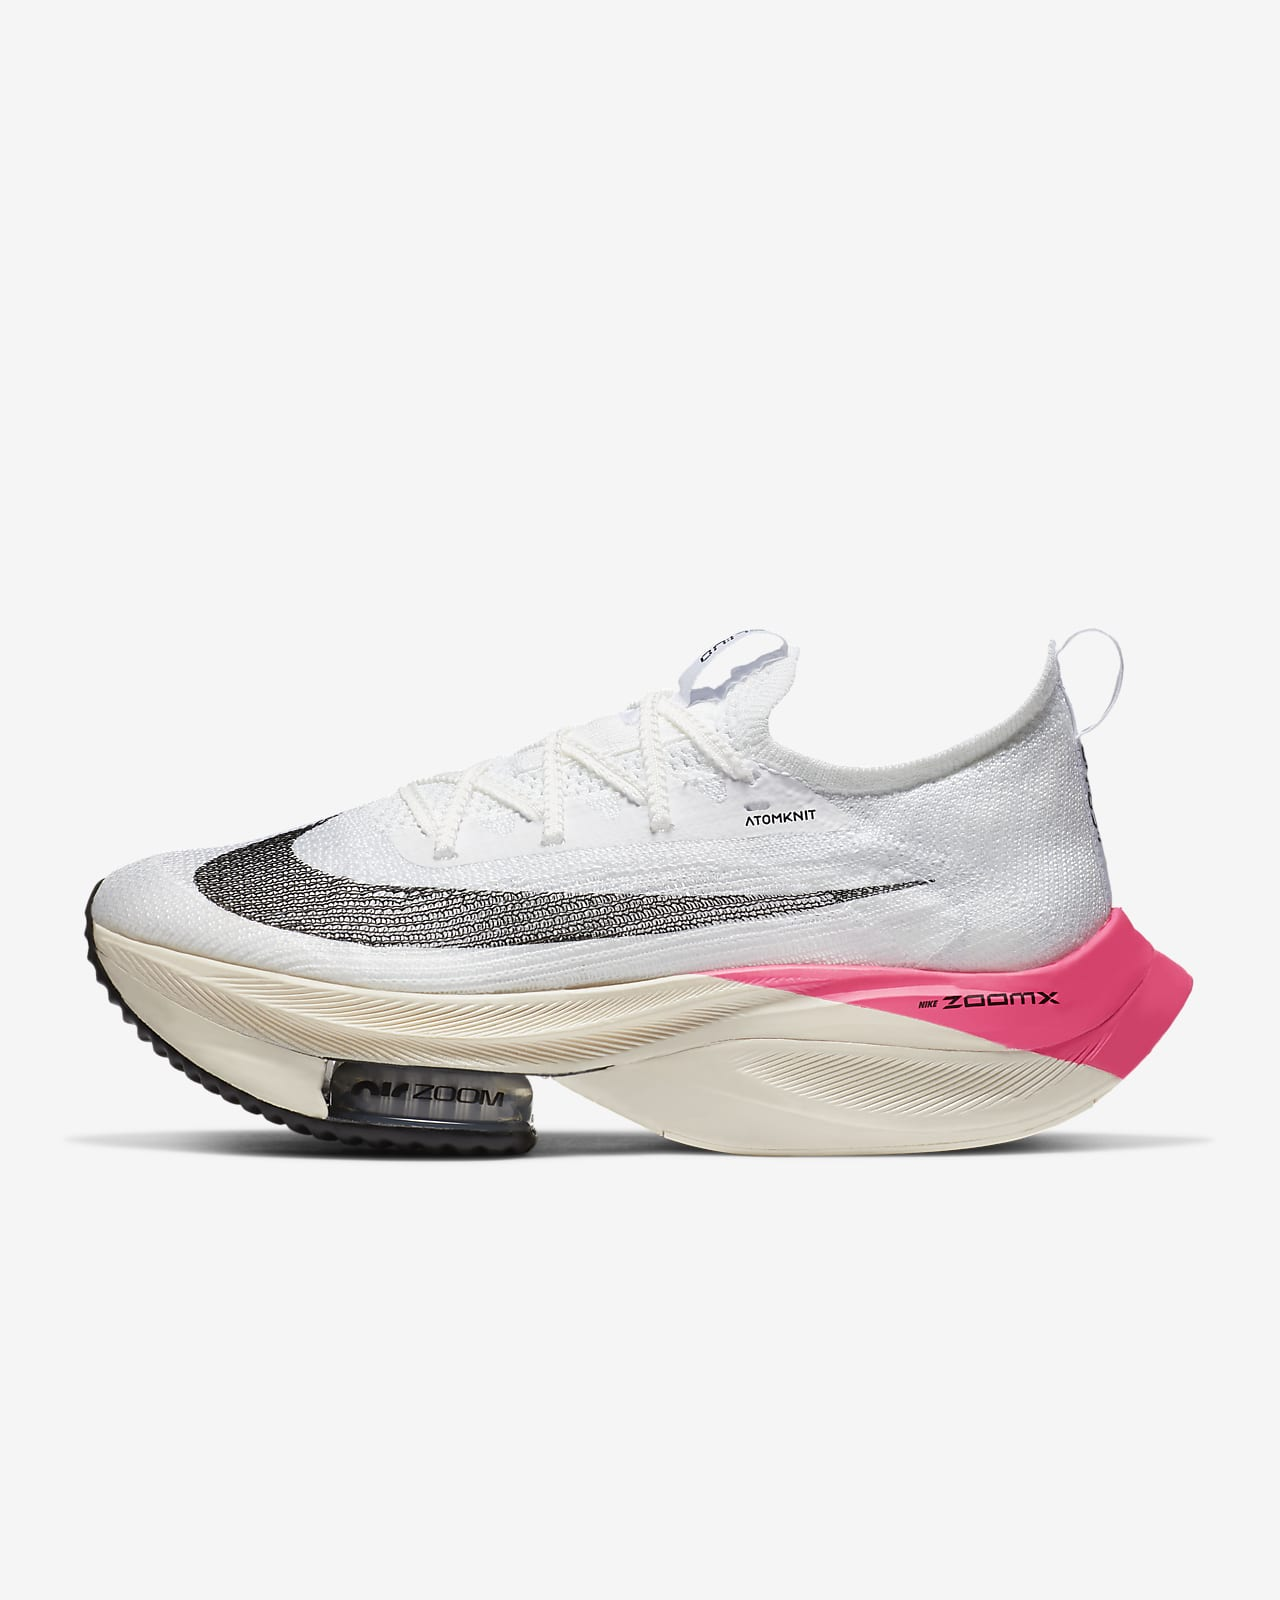 Nike Air Zoom Alphafly Next% EK 女子跑步鞋